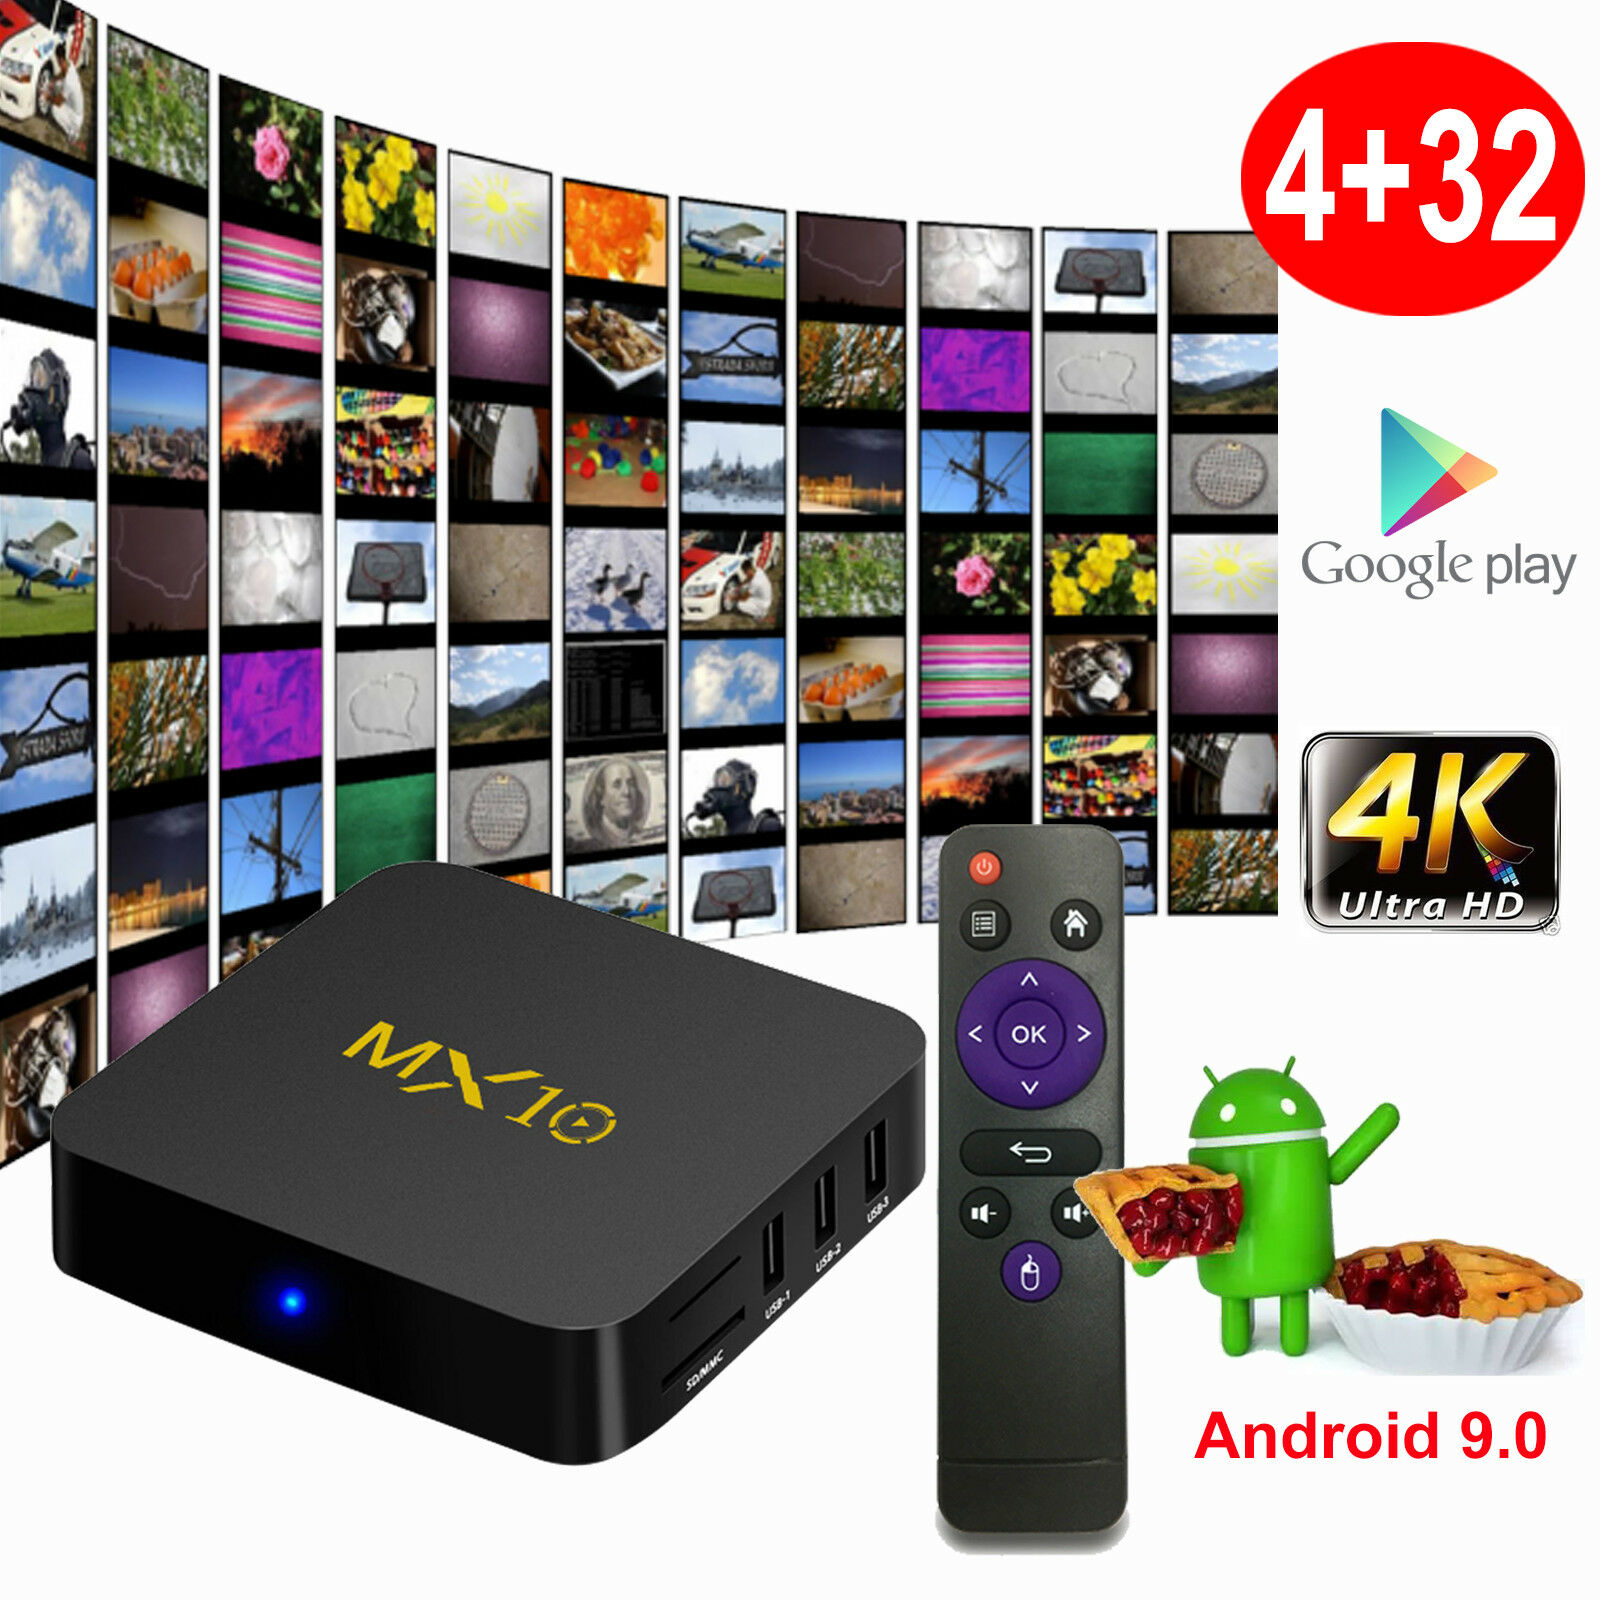 2019 MX10 Android 9.0 Pie 4+32GB 4K Media Player Smart TV BOX Quad Core USB 3.0 Featured